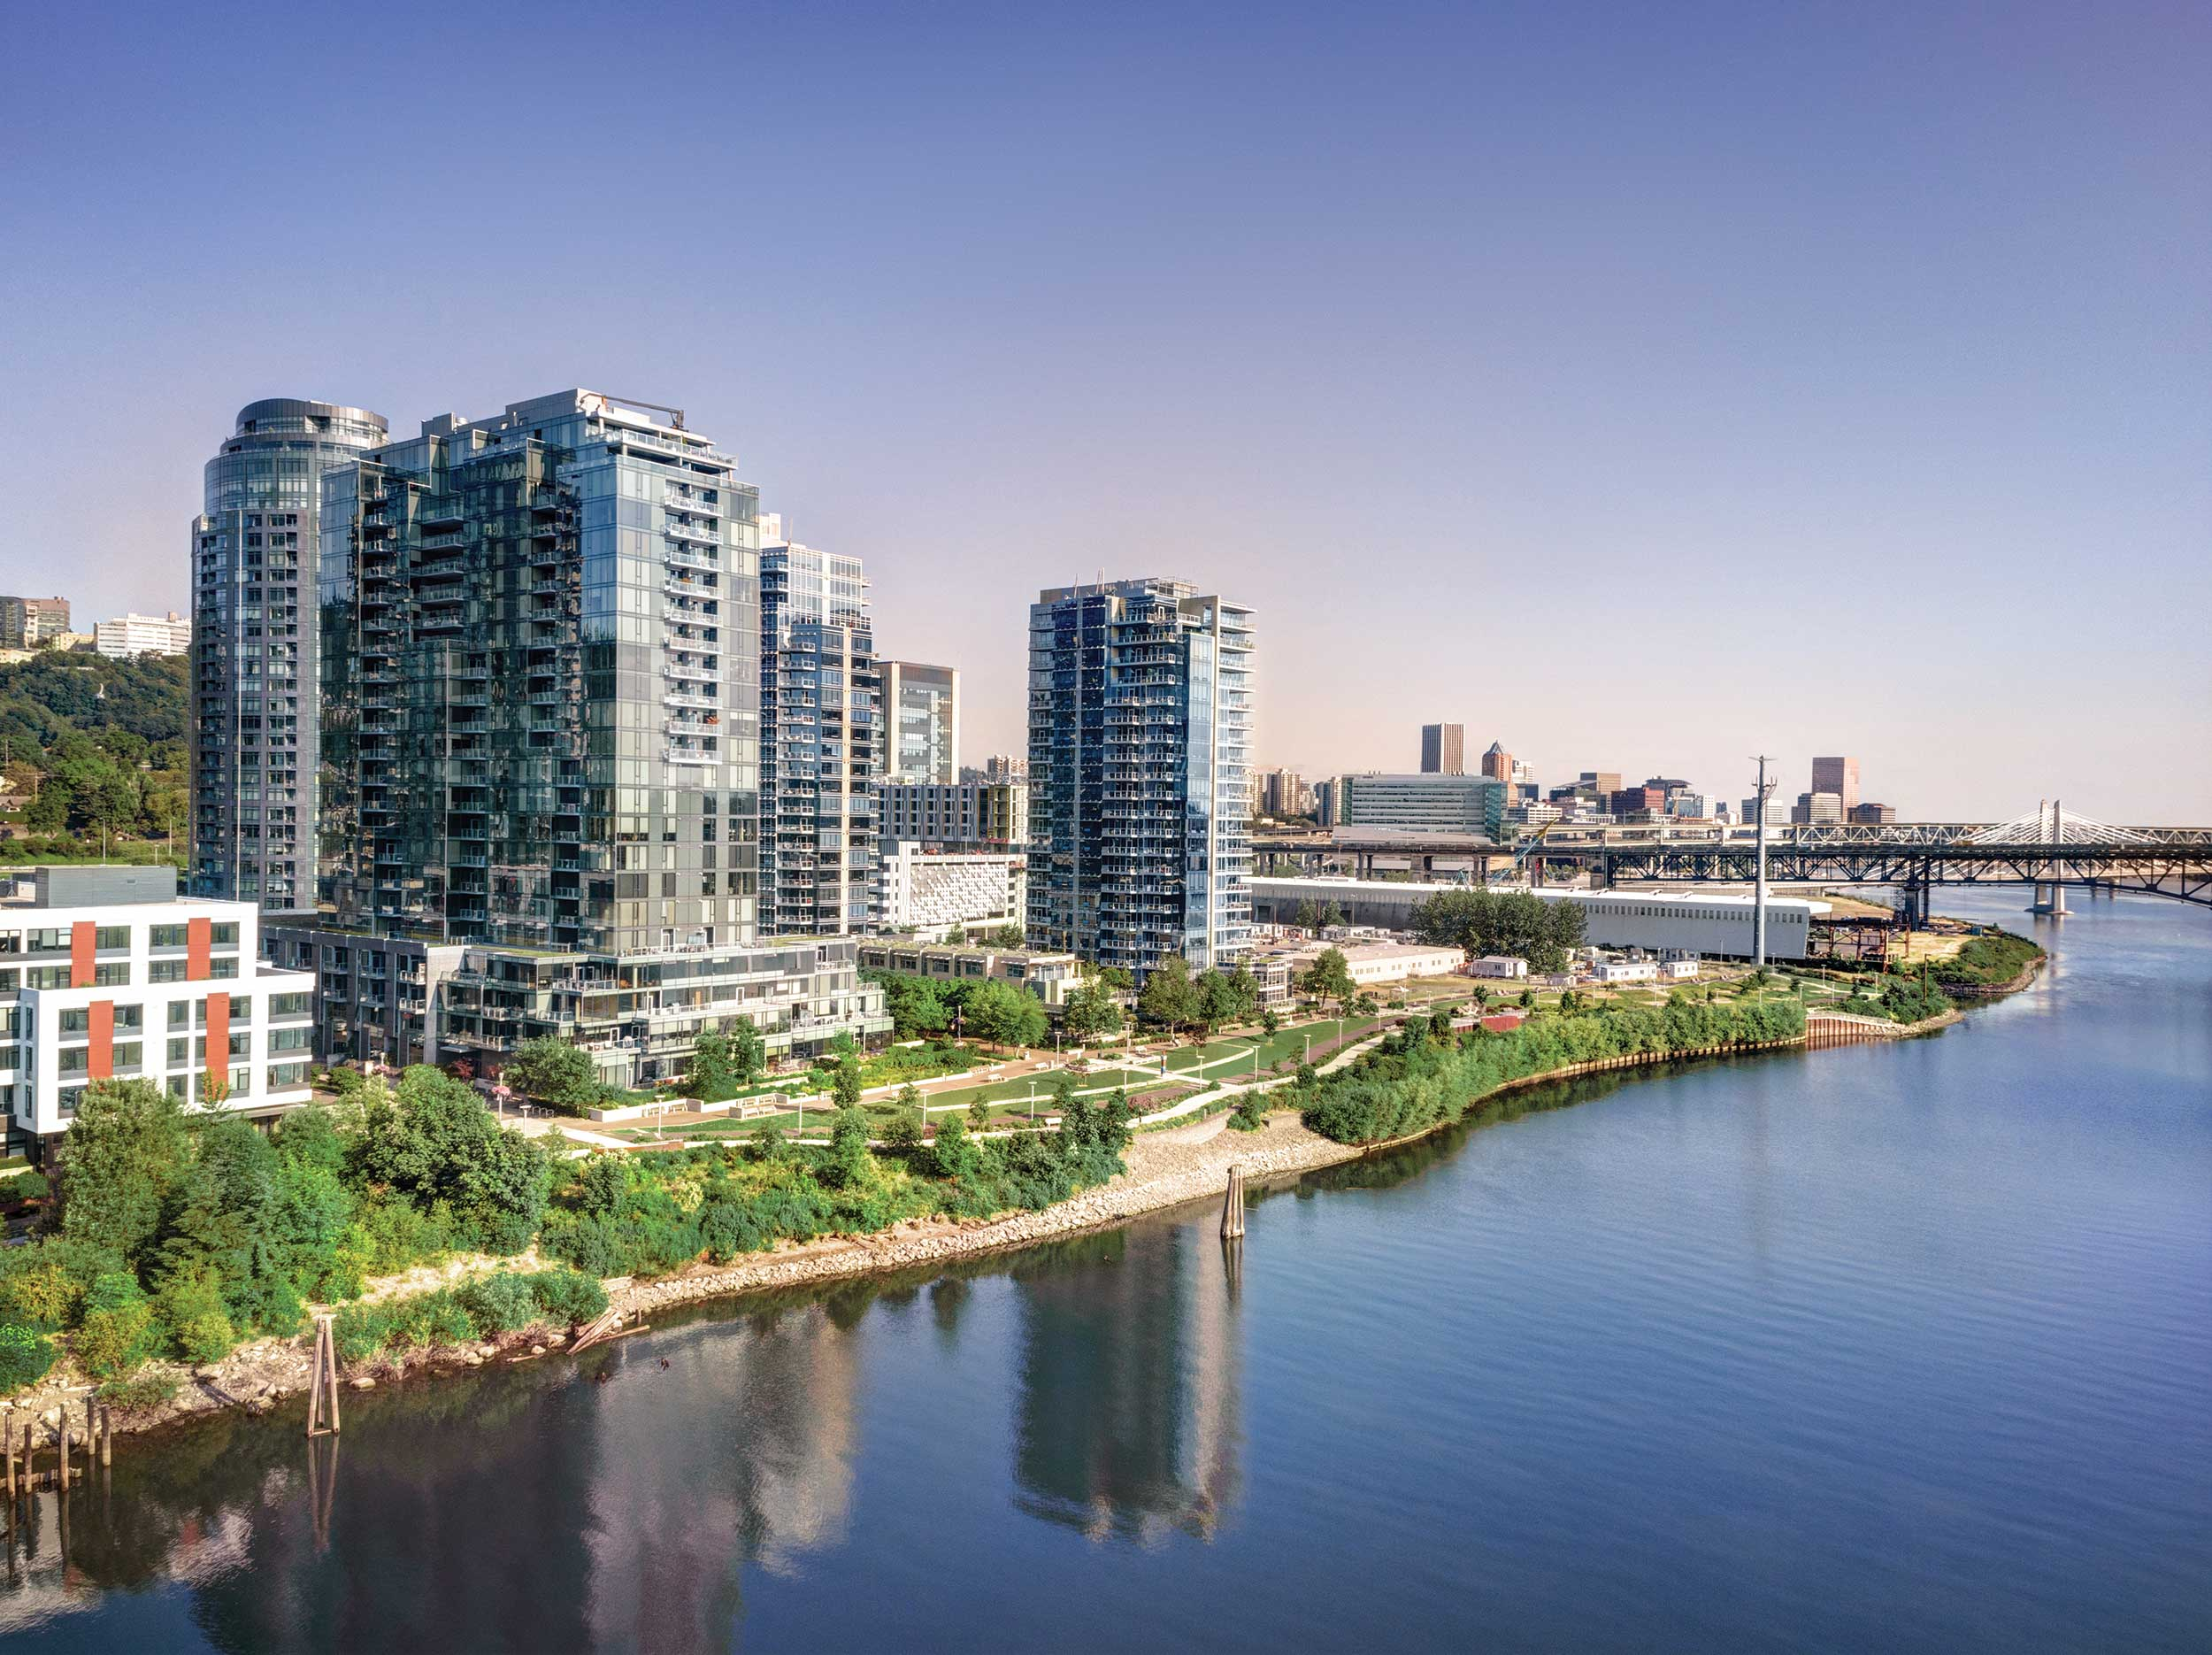 Atwater Place in the foreground is the South Waterfront's most exclusive address.